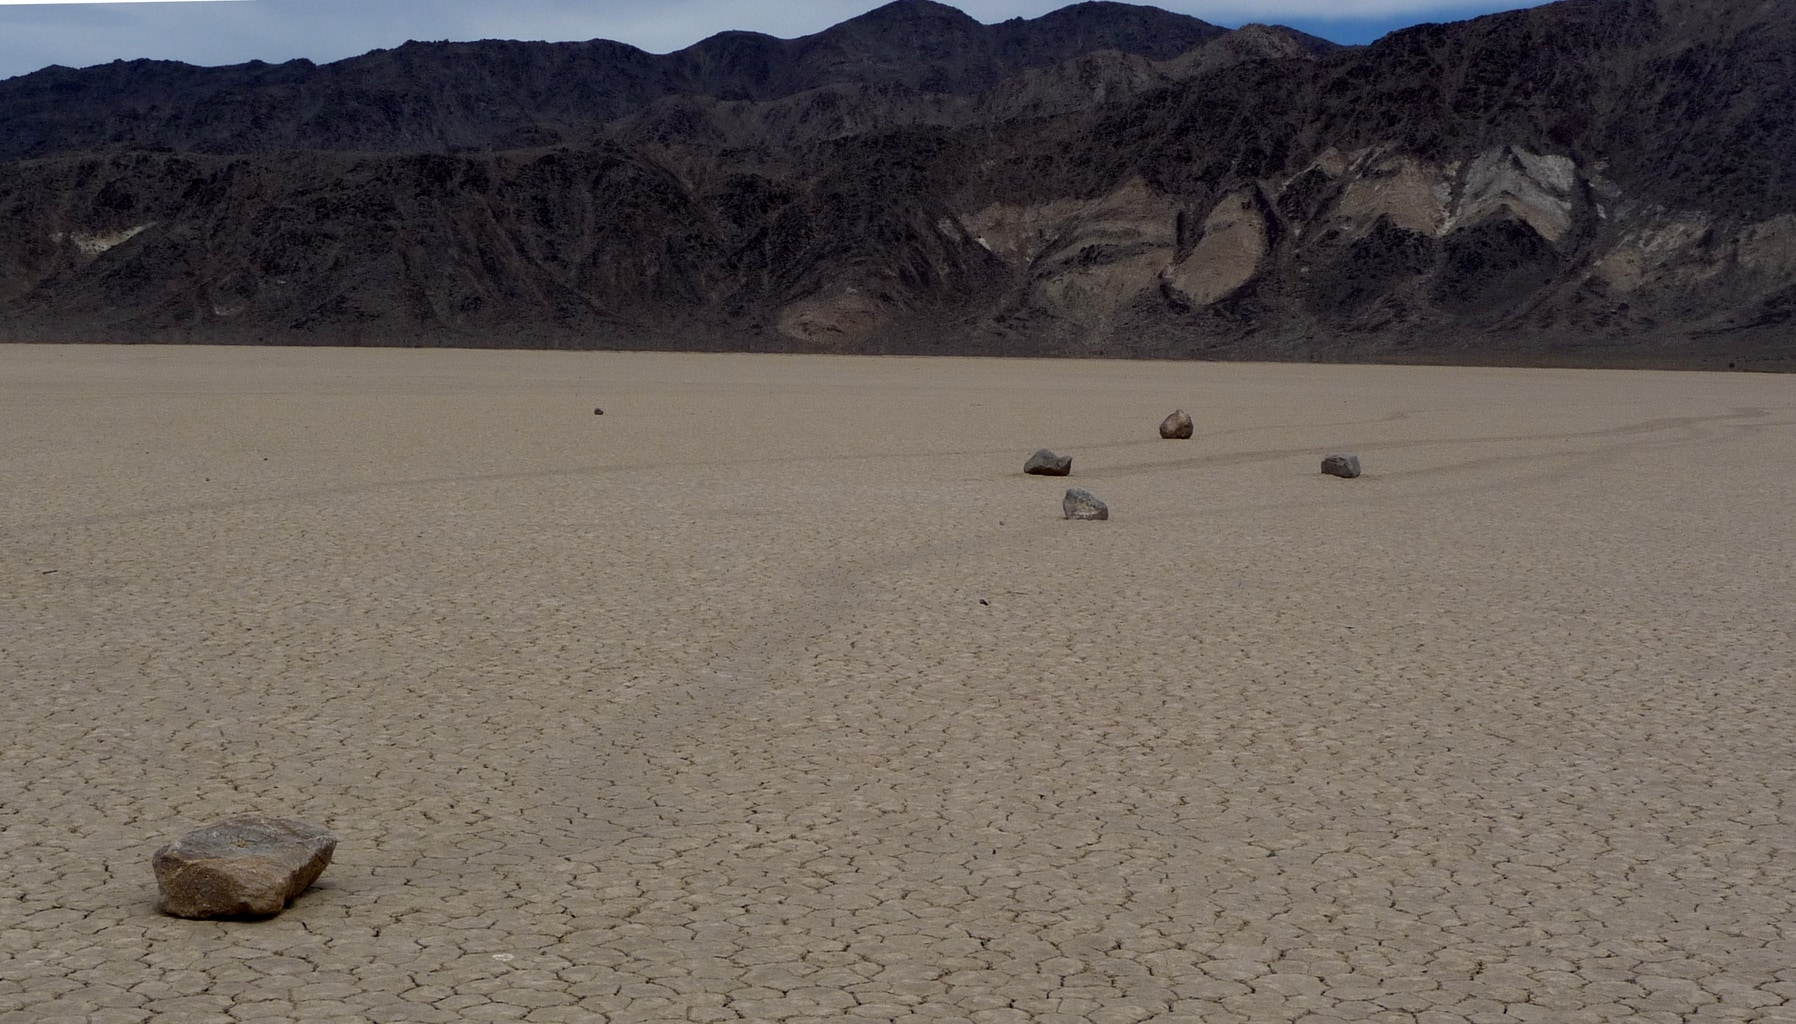 Death_Valley_NP_-_Racetrack_Playa_-_sailing_stone_race (Wikimedia Commons)